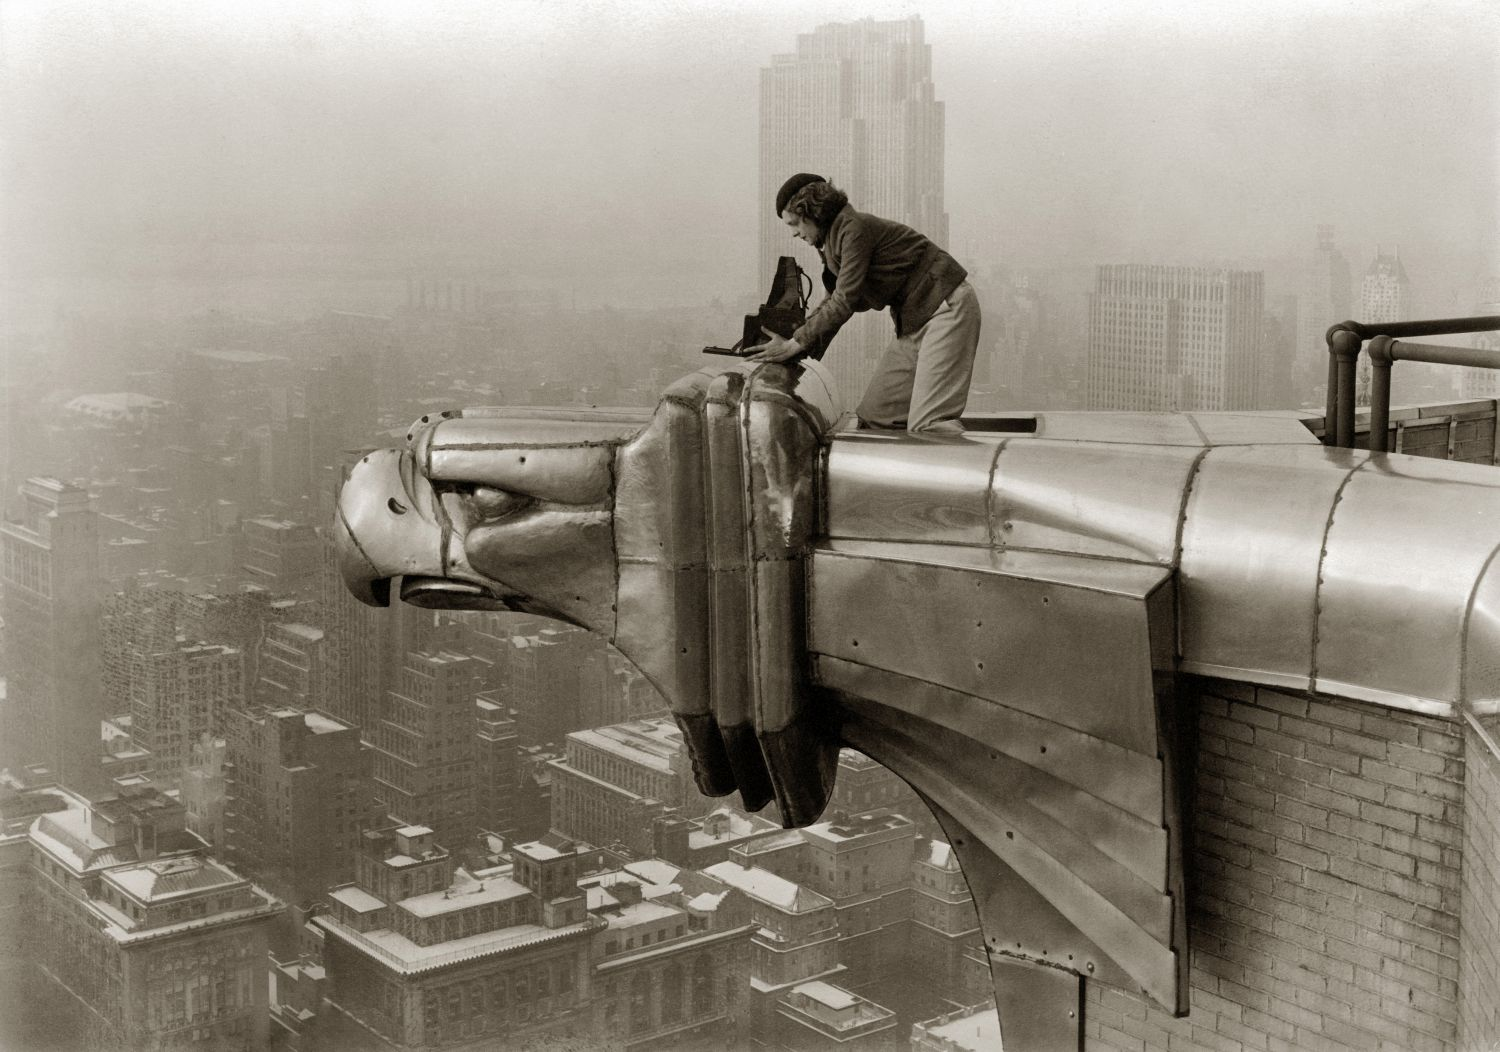 American photographer and journalist Margaret Bourke-White (1904 - 1971) perches on an eagle head gargoyle at the top of the Chrysler Building and focuses a camera, New York, New York, 1935. (Photo by Oscar Graubner/The LIFE Images Collection via Getty Images/Getty Images)